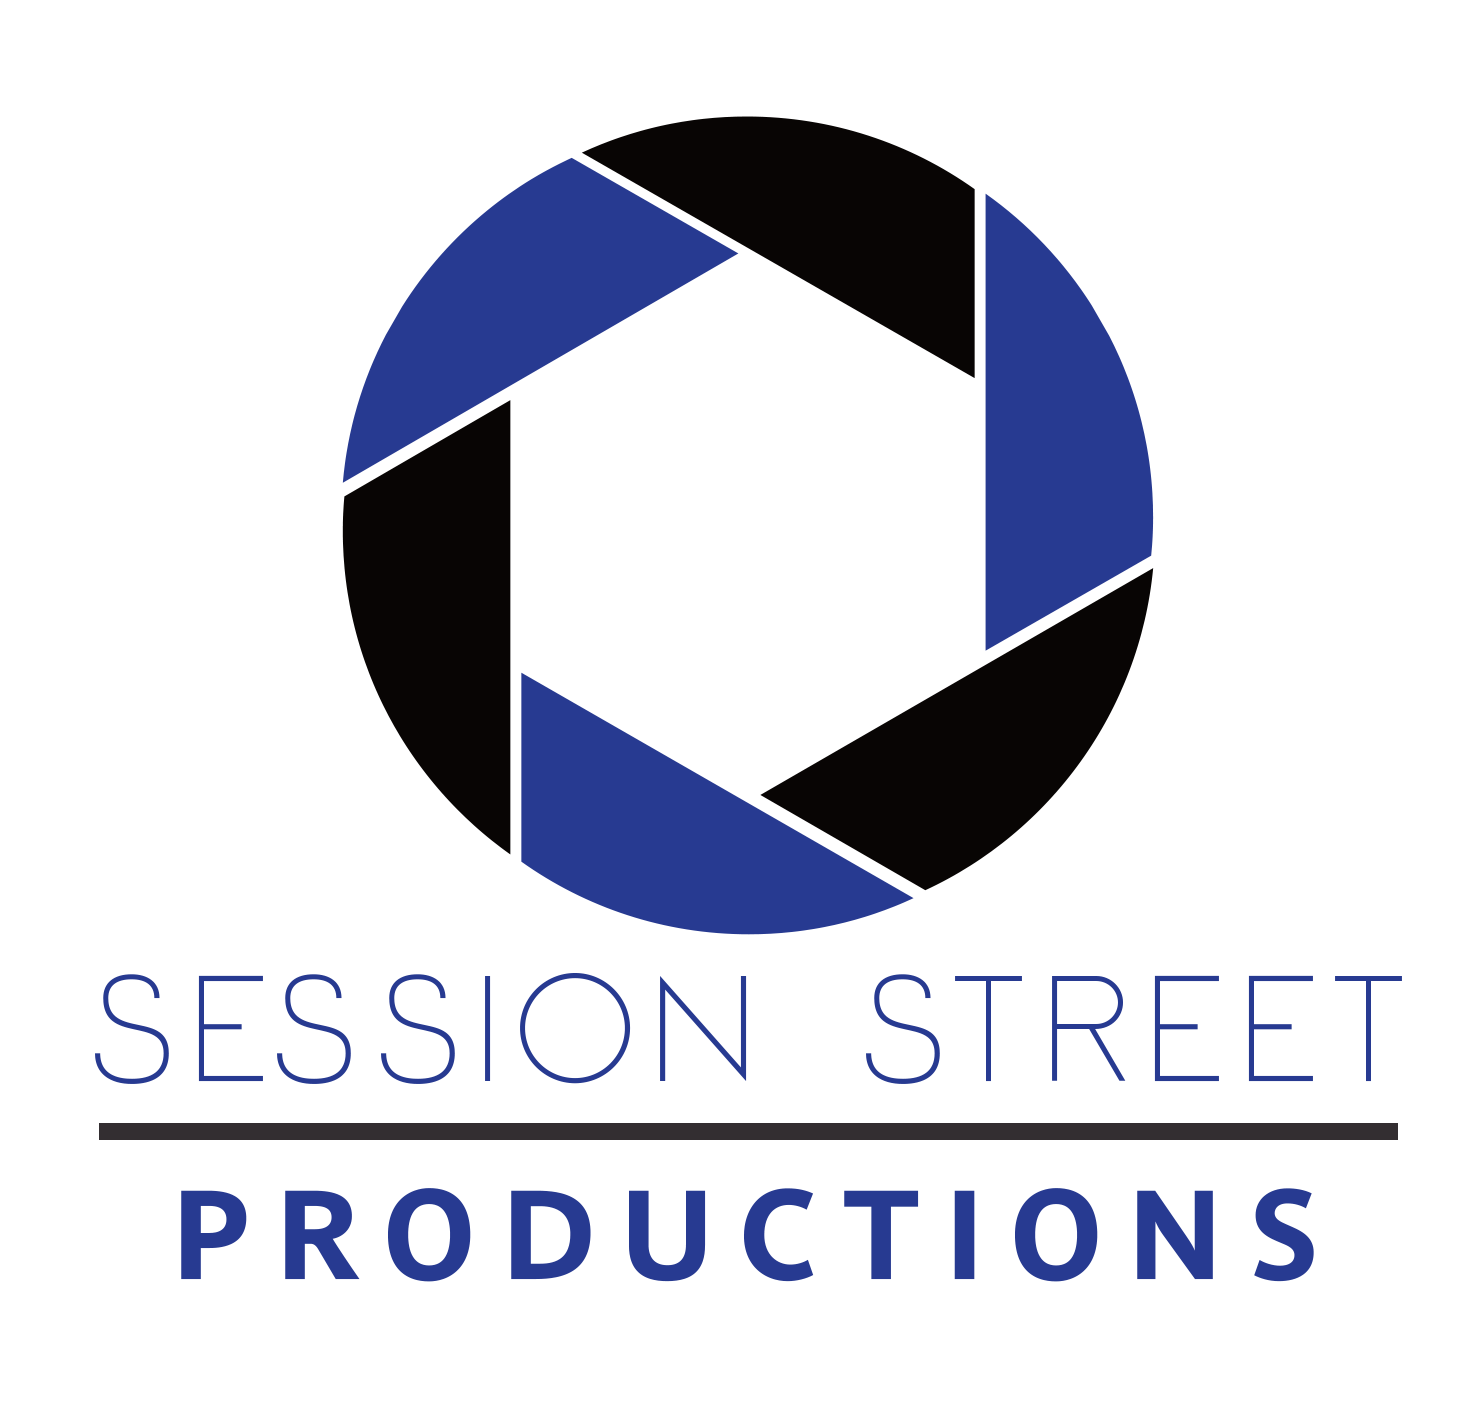 Session Street Productions